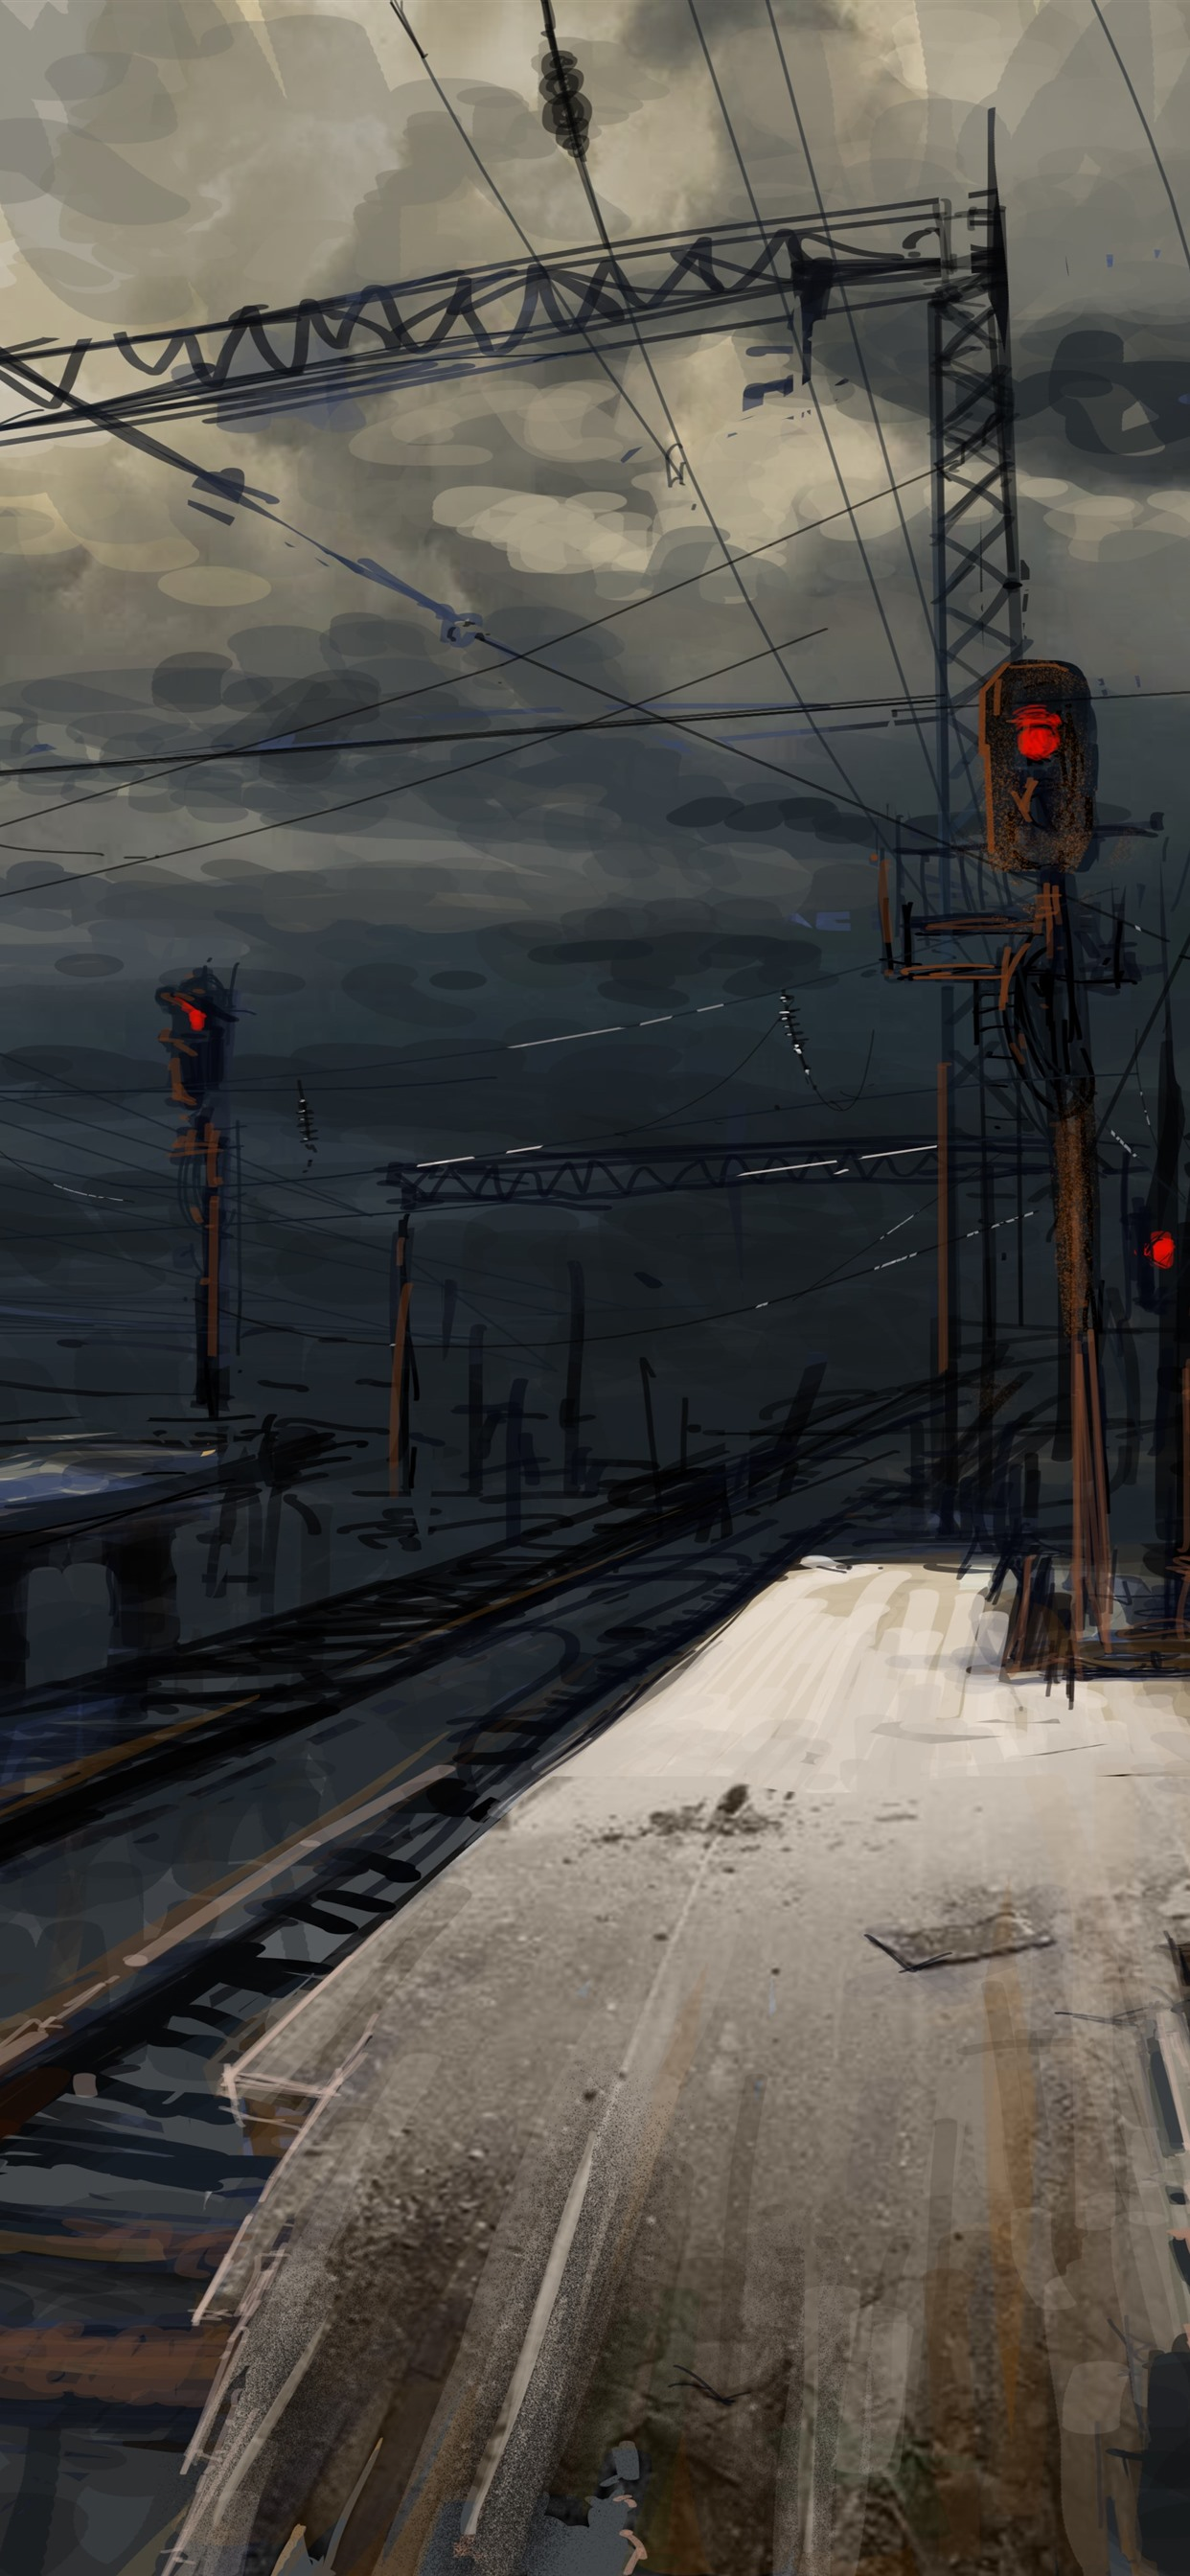 Railroad Station Night Art Picture 1242x2688 Iphone Xs